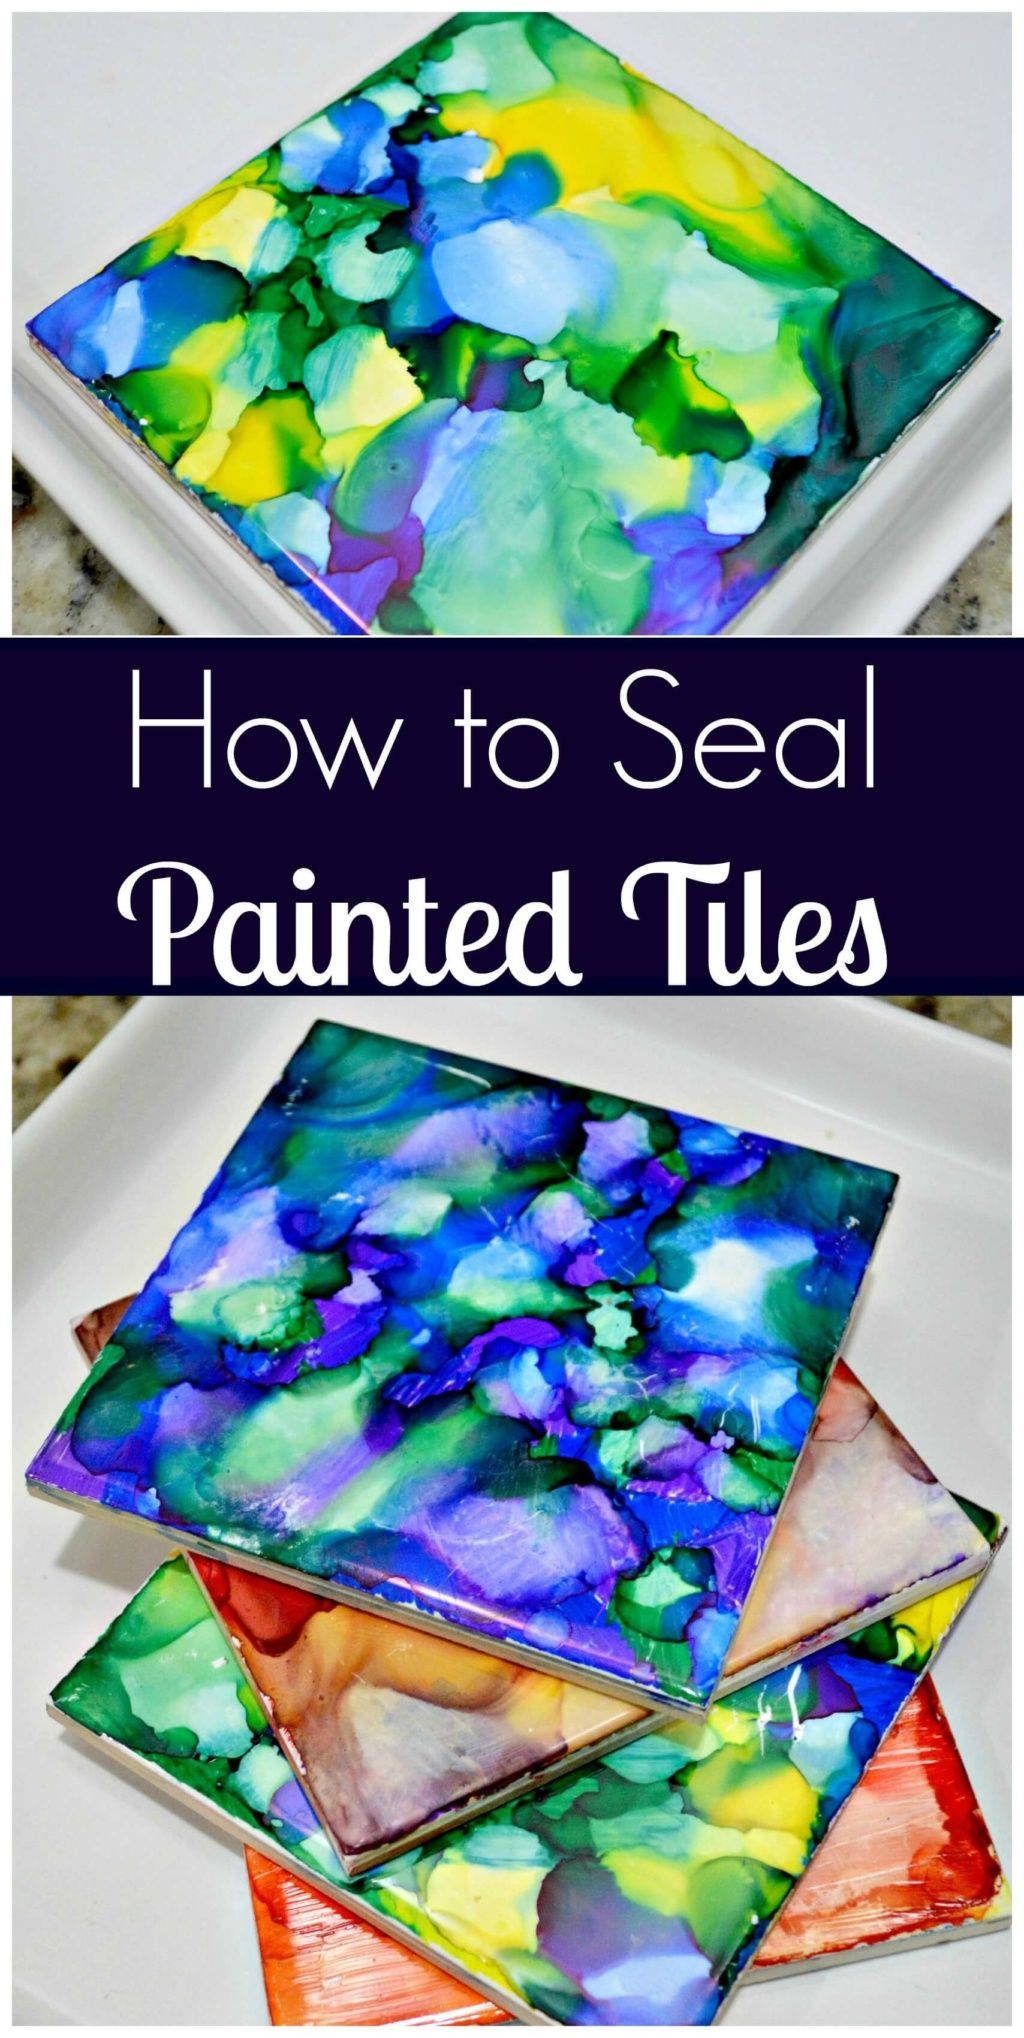 How To Seal Painted Tiles is part of Sharpie crafts, Alcohol ink crafts, Crafts, Sharpie art, Alcohol ink art, Fun crafts - This post contains affiliate links  If you click one and make a purchase, I may receive a commission! I was so excited to see a massive response to my post about painting tiles with Sharpies and Rubbing Alcohol! So happy you all liked it and welcome to anyone new who found my